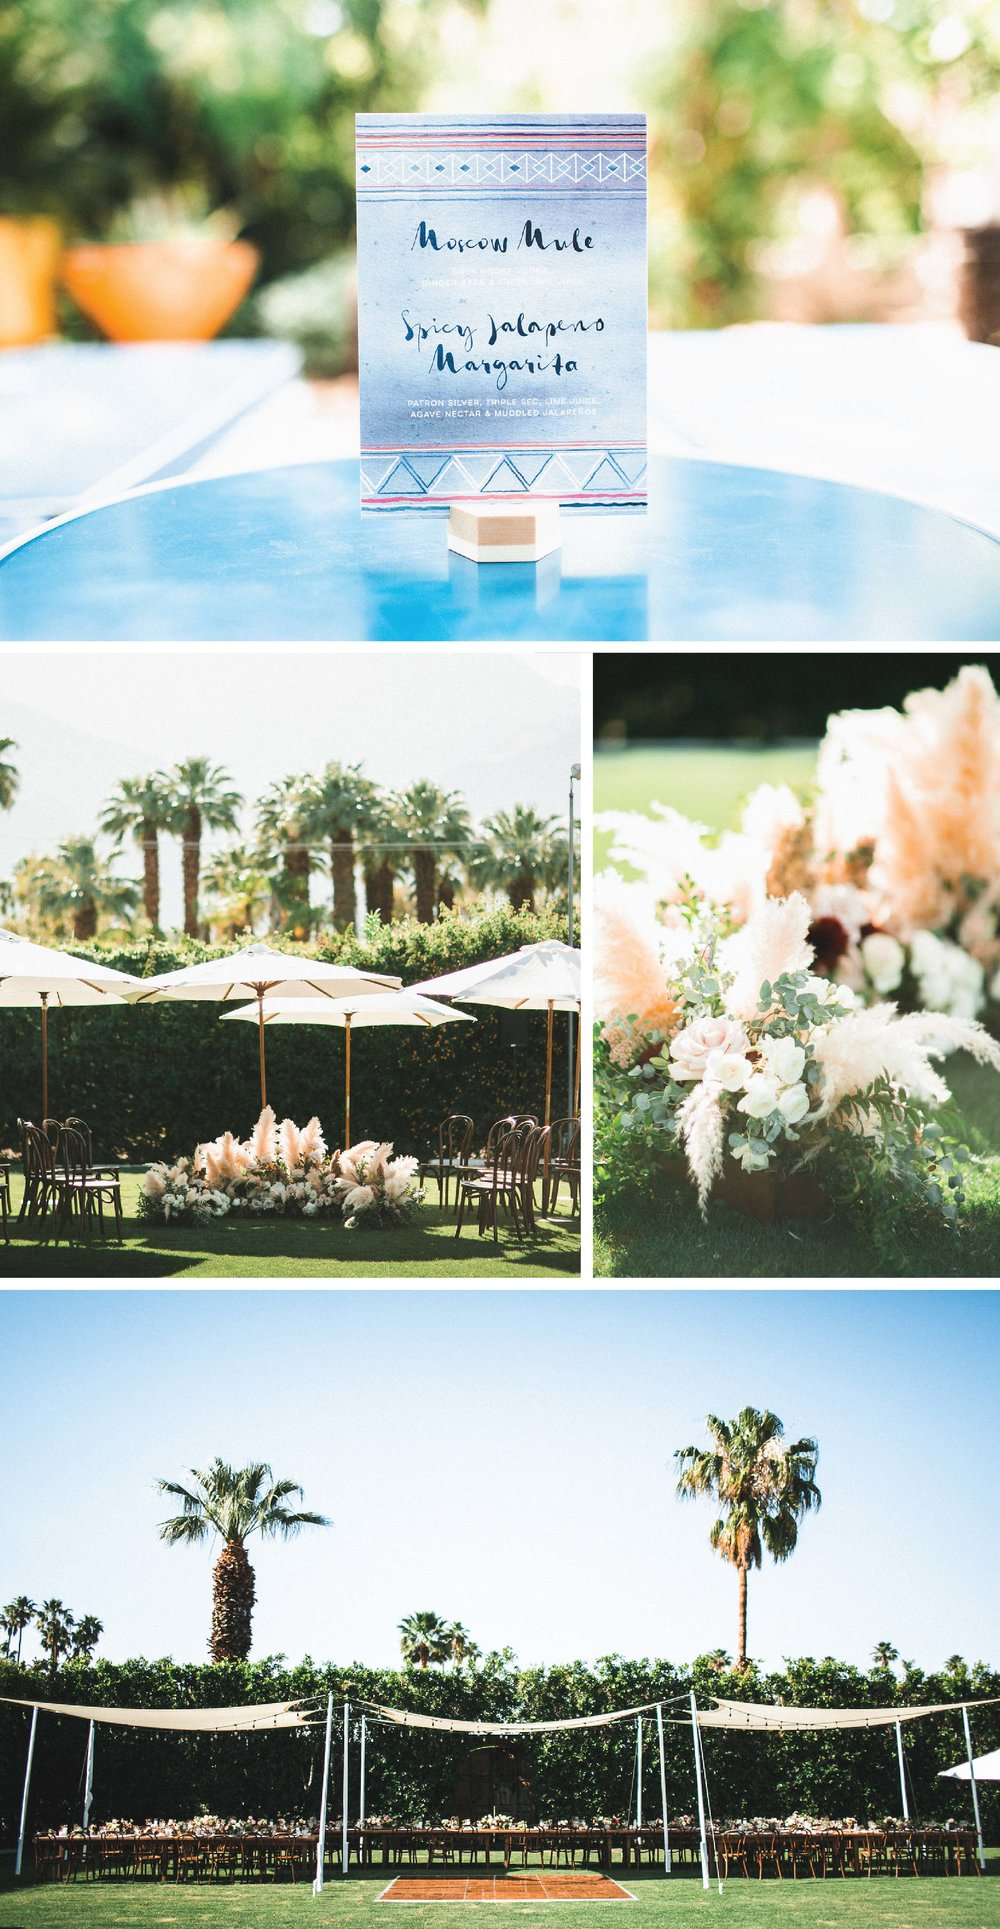 AliMarioIndigo-Wedding-BlogComps-02.jpg